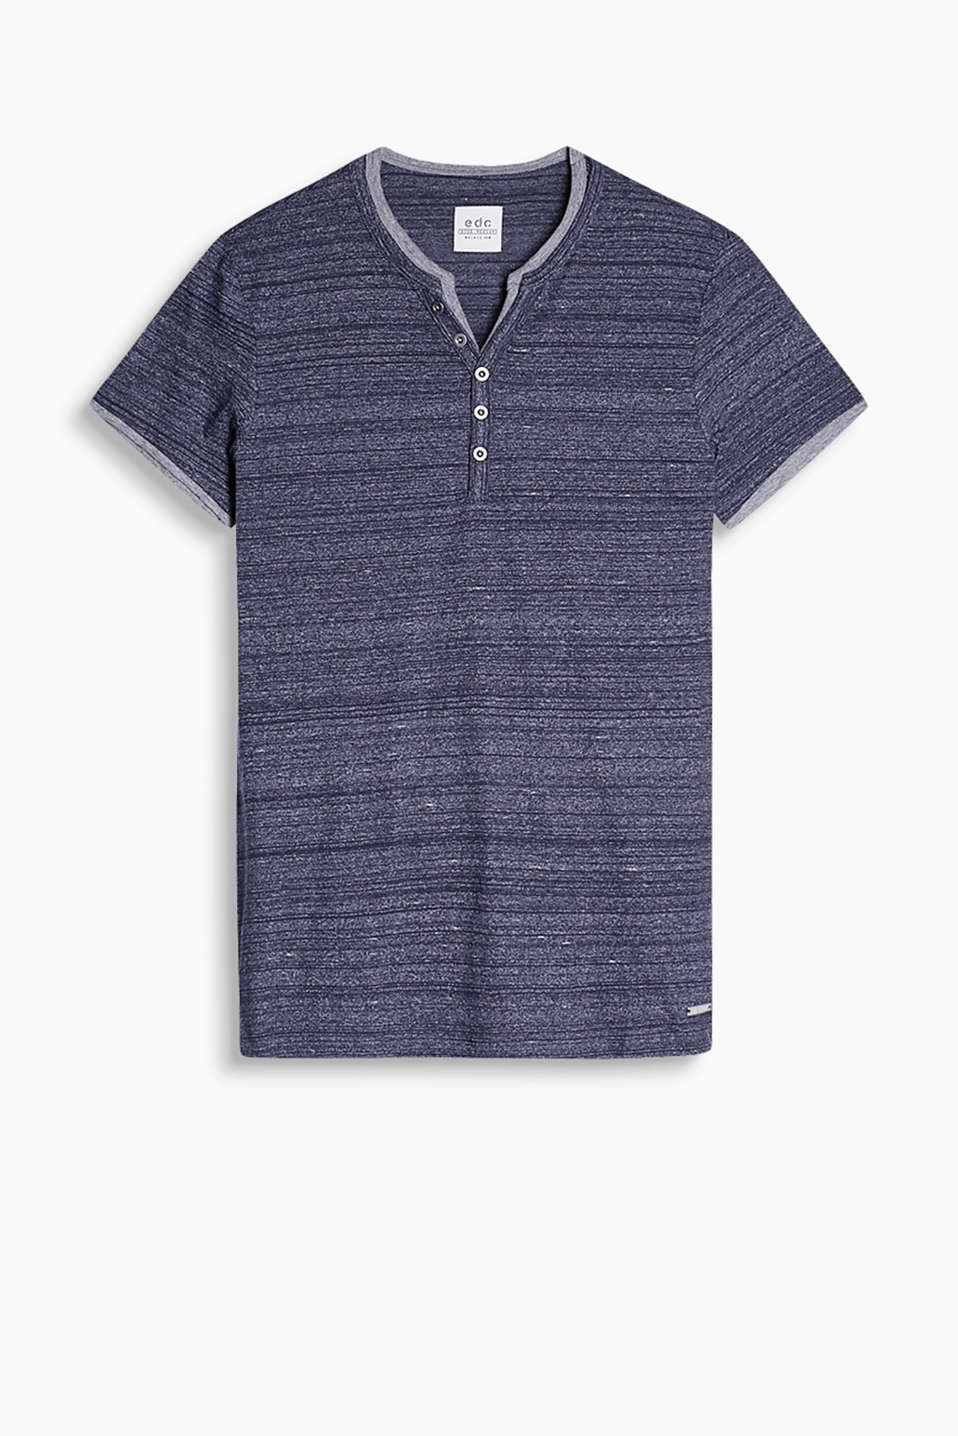 Henley-style T-shirt in soft blended cotton with a layered effect